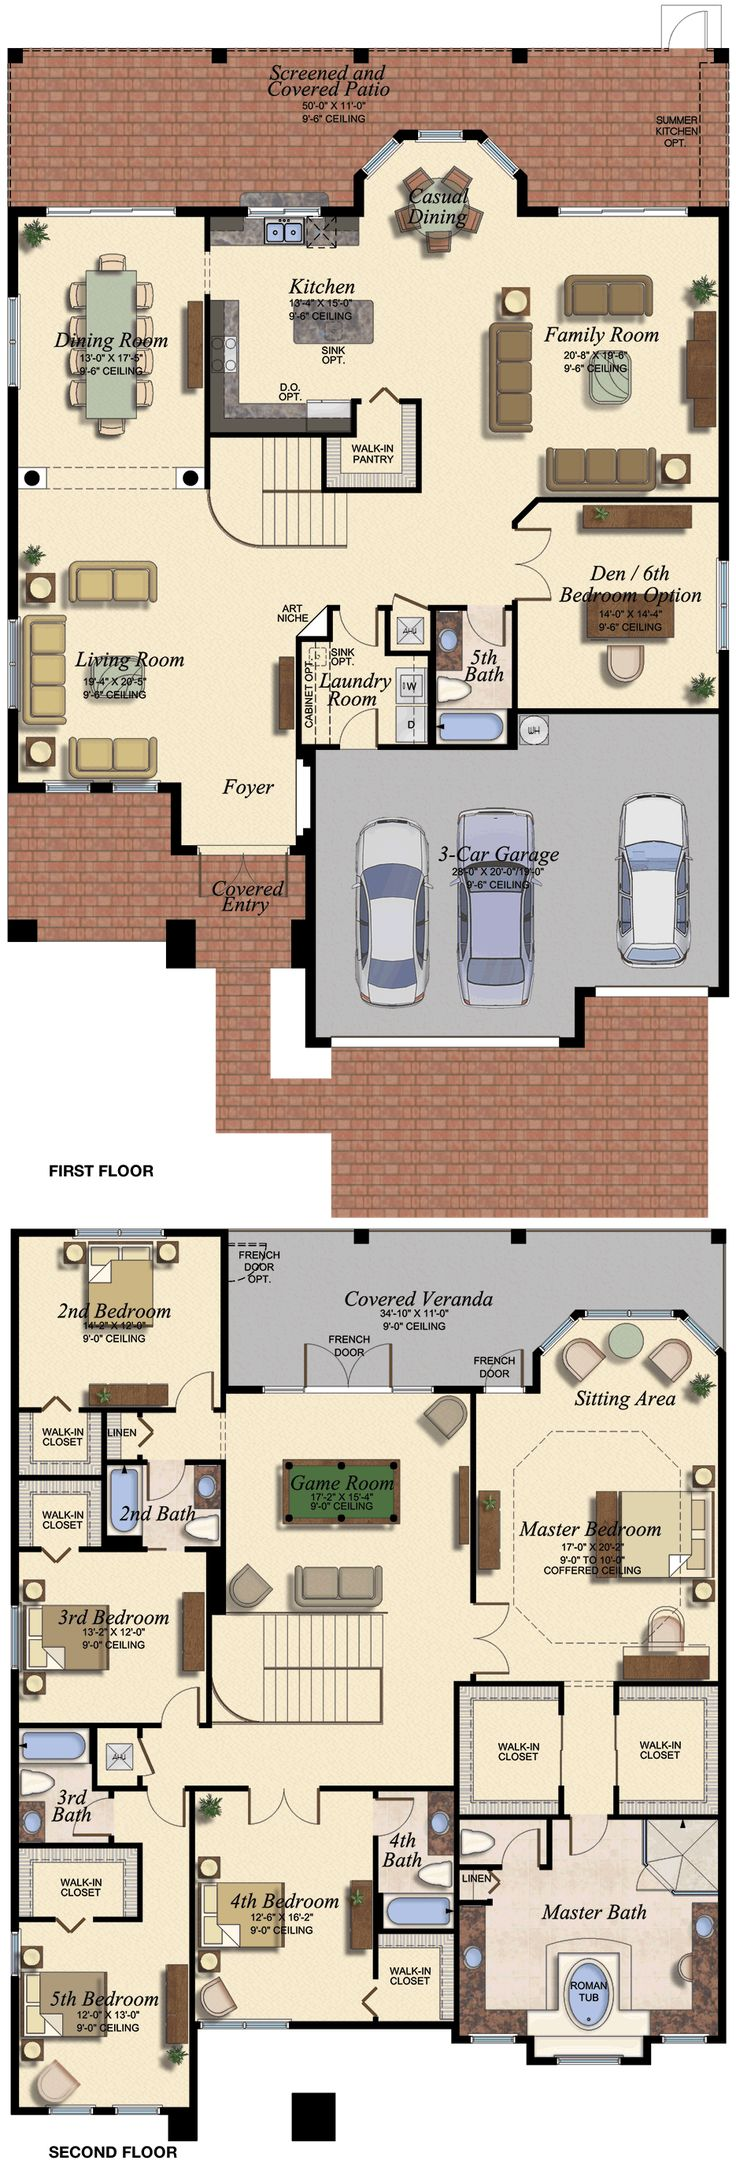 VENETIAN/678 Floor Plan (Large View). Needs more built in storage downstairs and I would make master suite smaller to fit laundry room and linen closet upstairs.